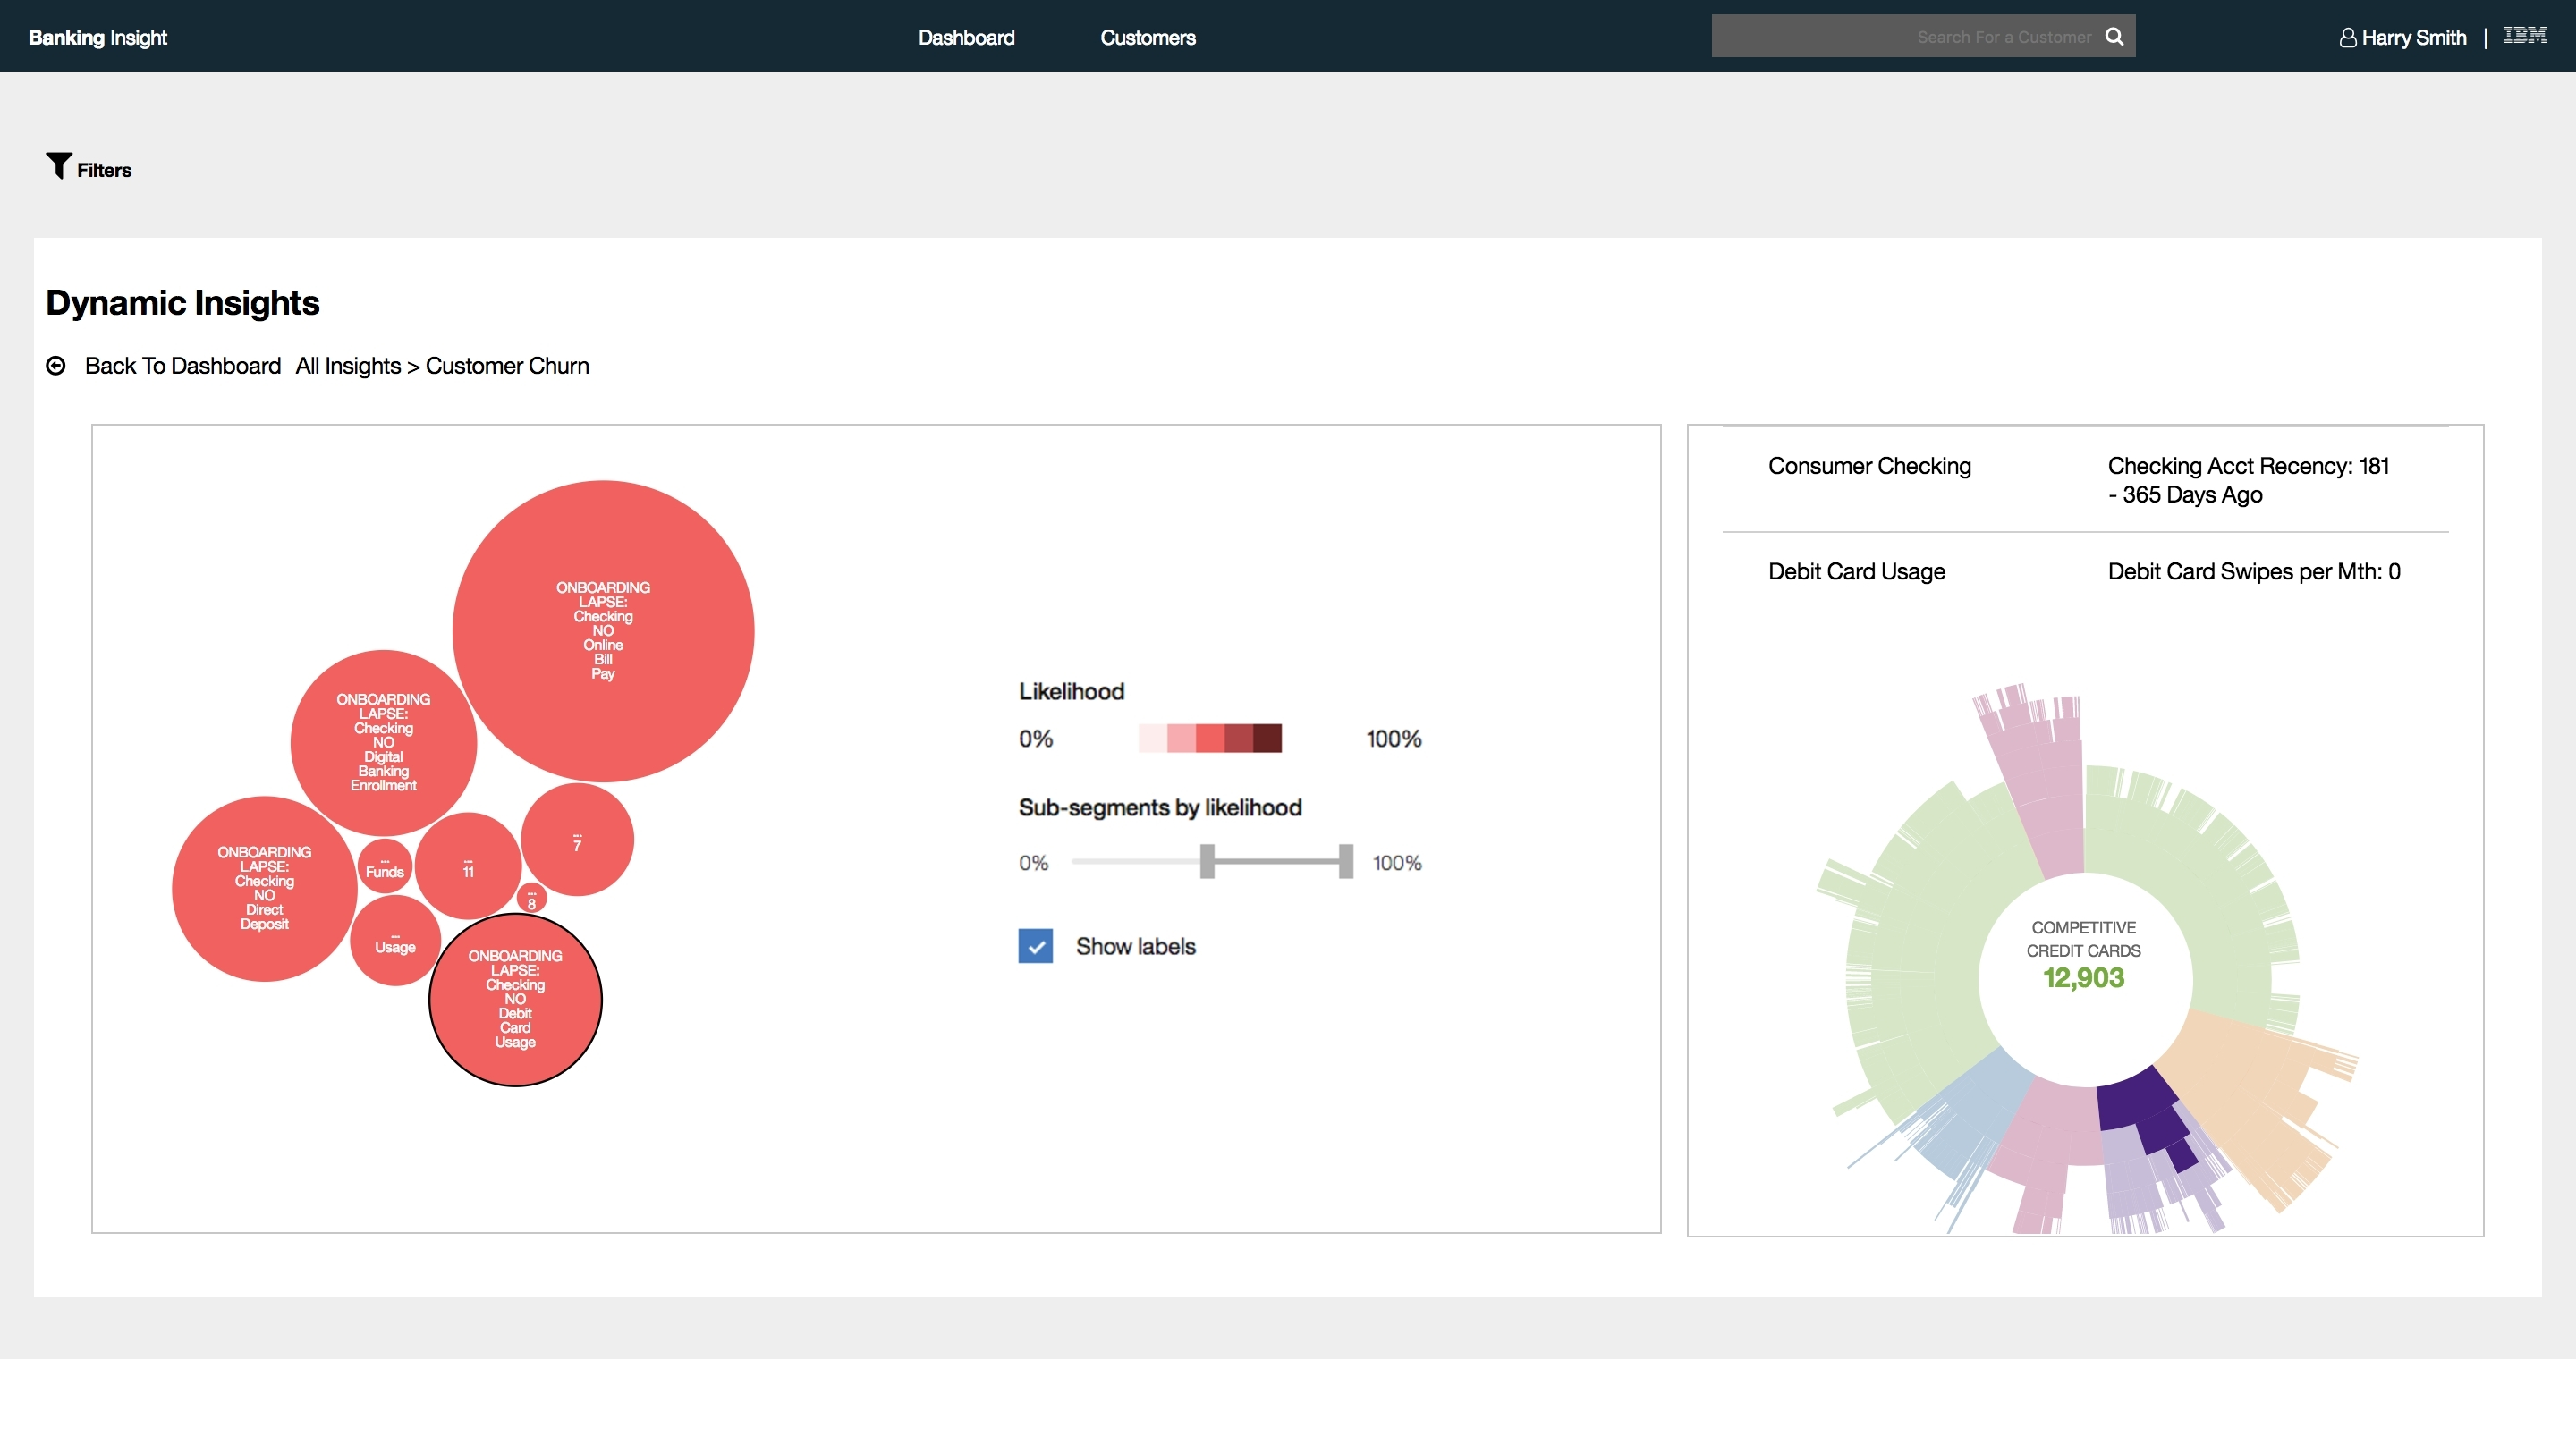 A dashboard that uses IBM's predictive analytics, machine learning, and Watson technology to develop dynamic segments of top insights, such as customer churn, that are enriched with Segmint's KLI insights allowing banks to explore and understand their customers through a detailed analysis of the customer's data. (Graphic: Business Wire)